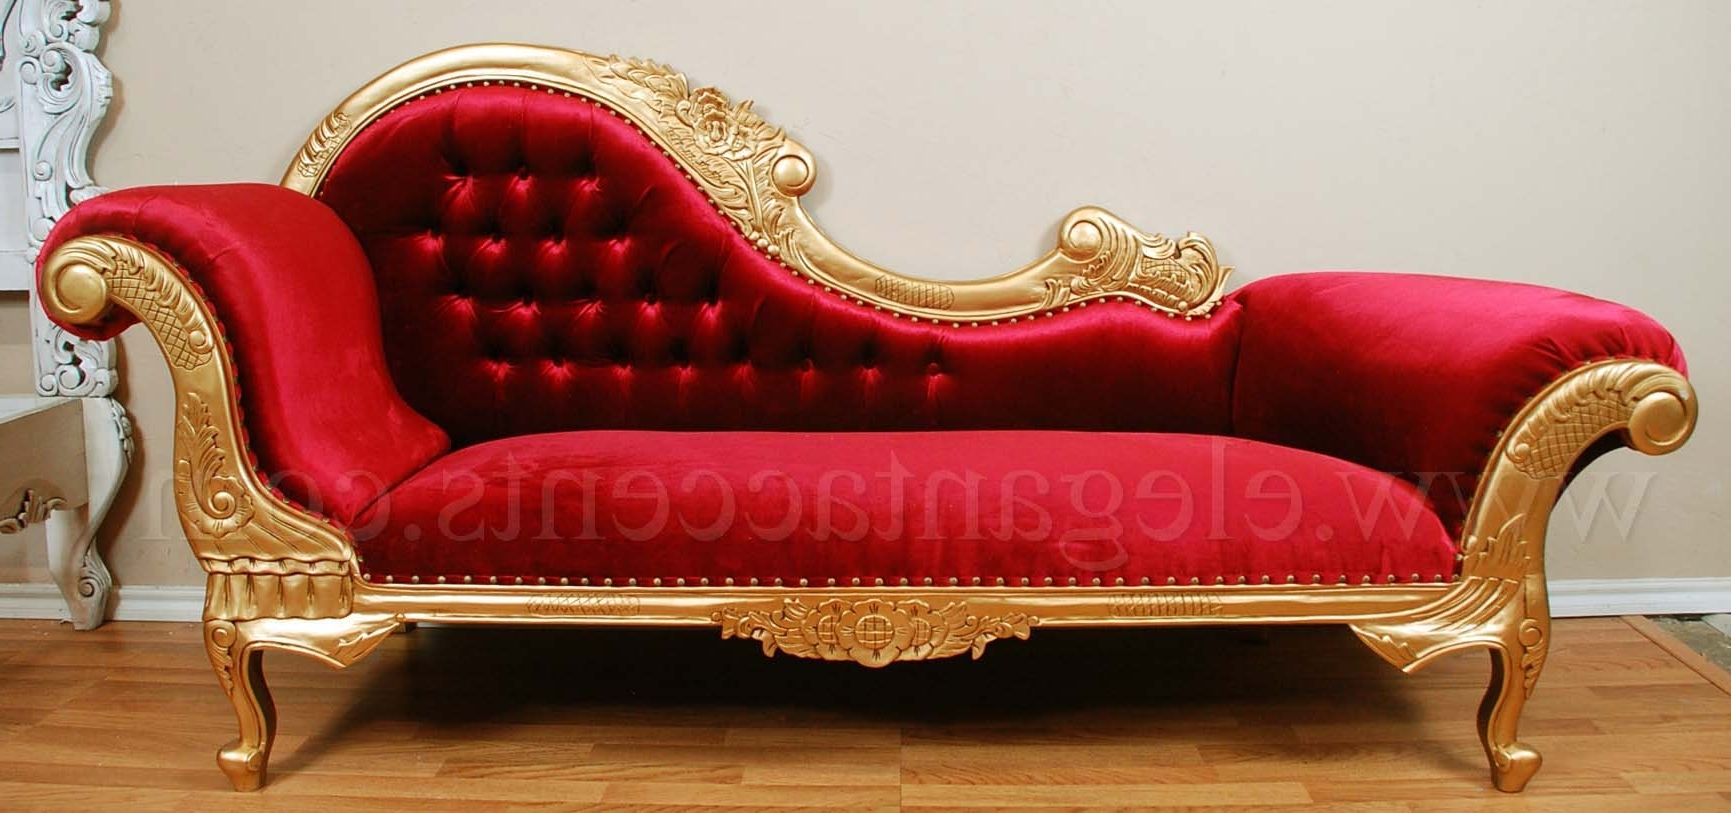 Gold Chaise Lounge Chairs Intended For Popular Impressive On Victorian Chaise Lounge With Victorian Chaise Gold (View 9 of 15)